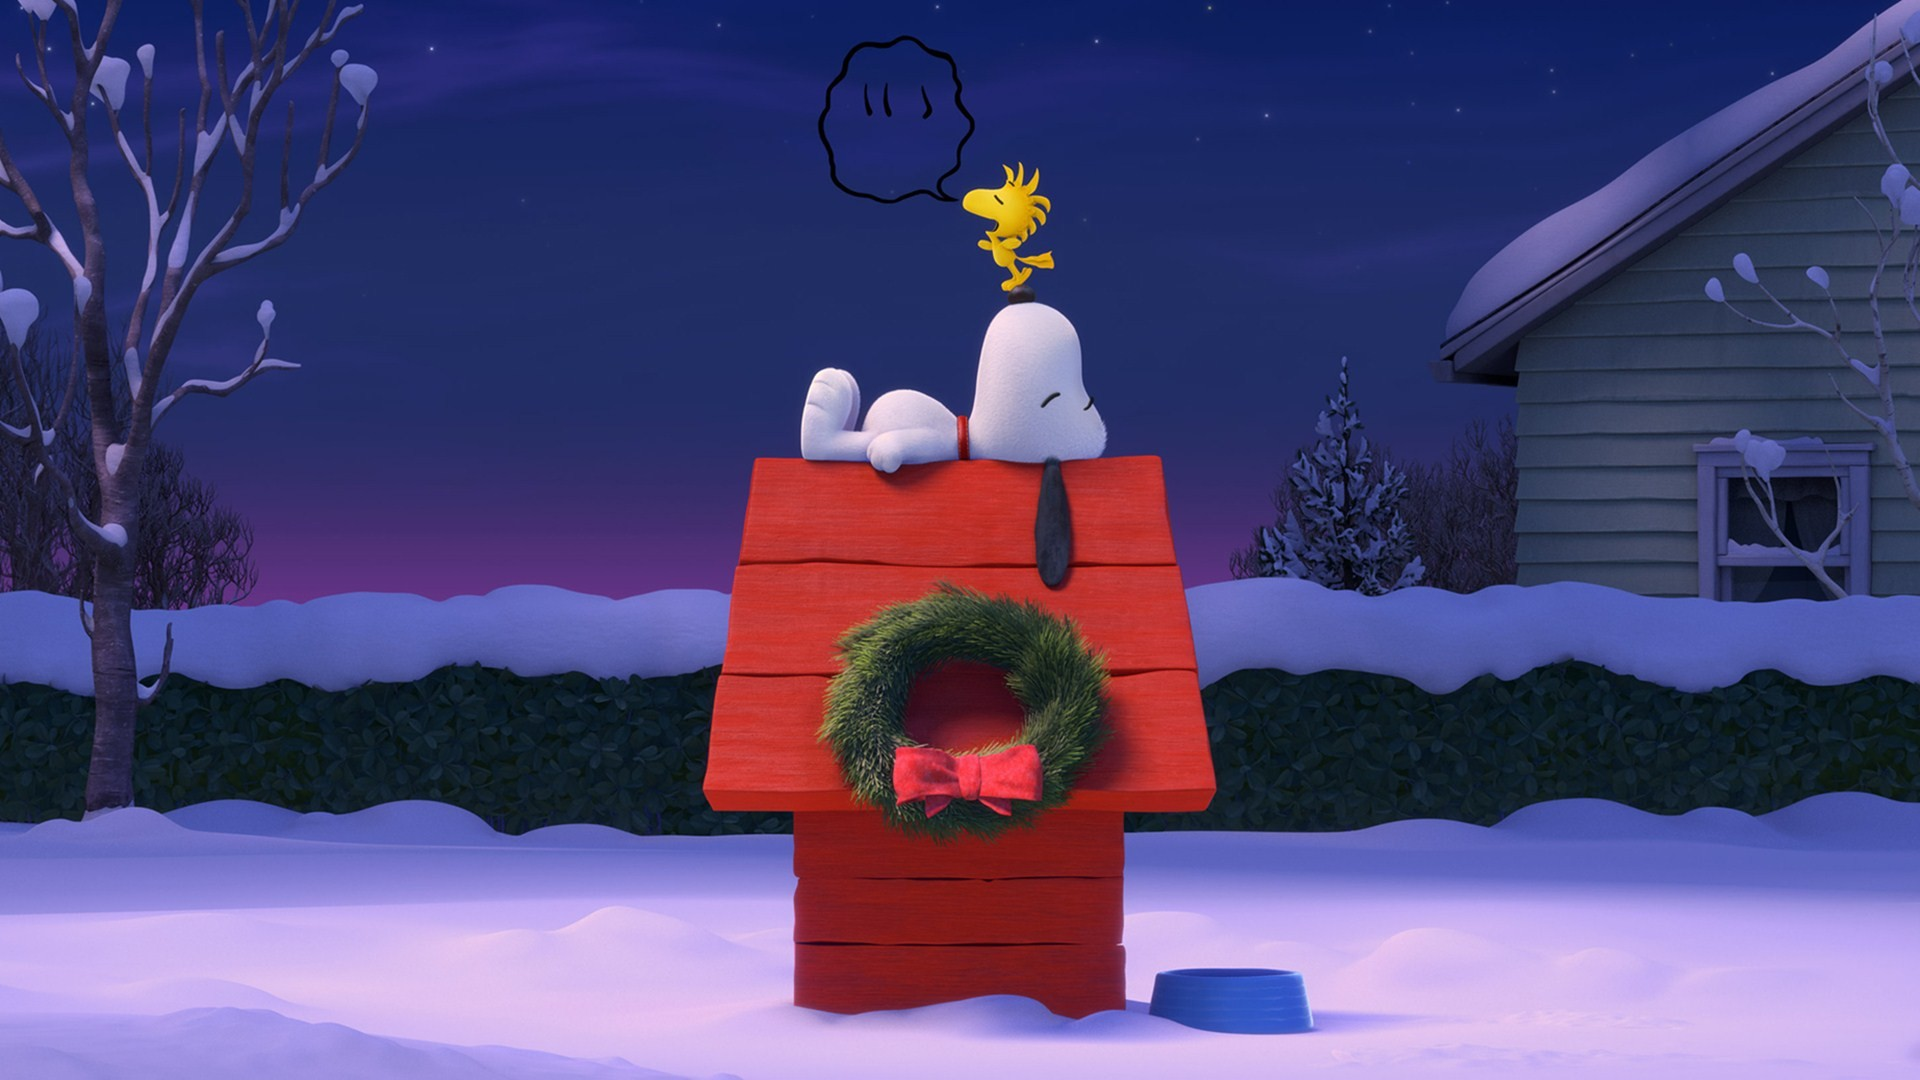 The Peanuts 2015 Movie Snoopy HD Wallpaper – DreamLoveWallpapers